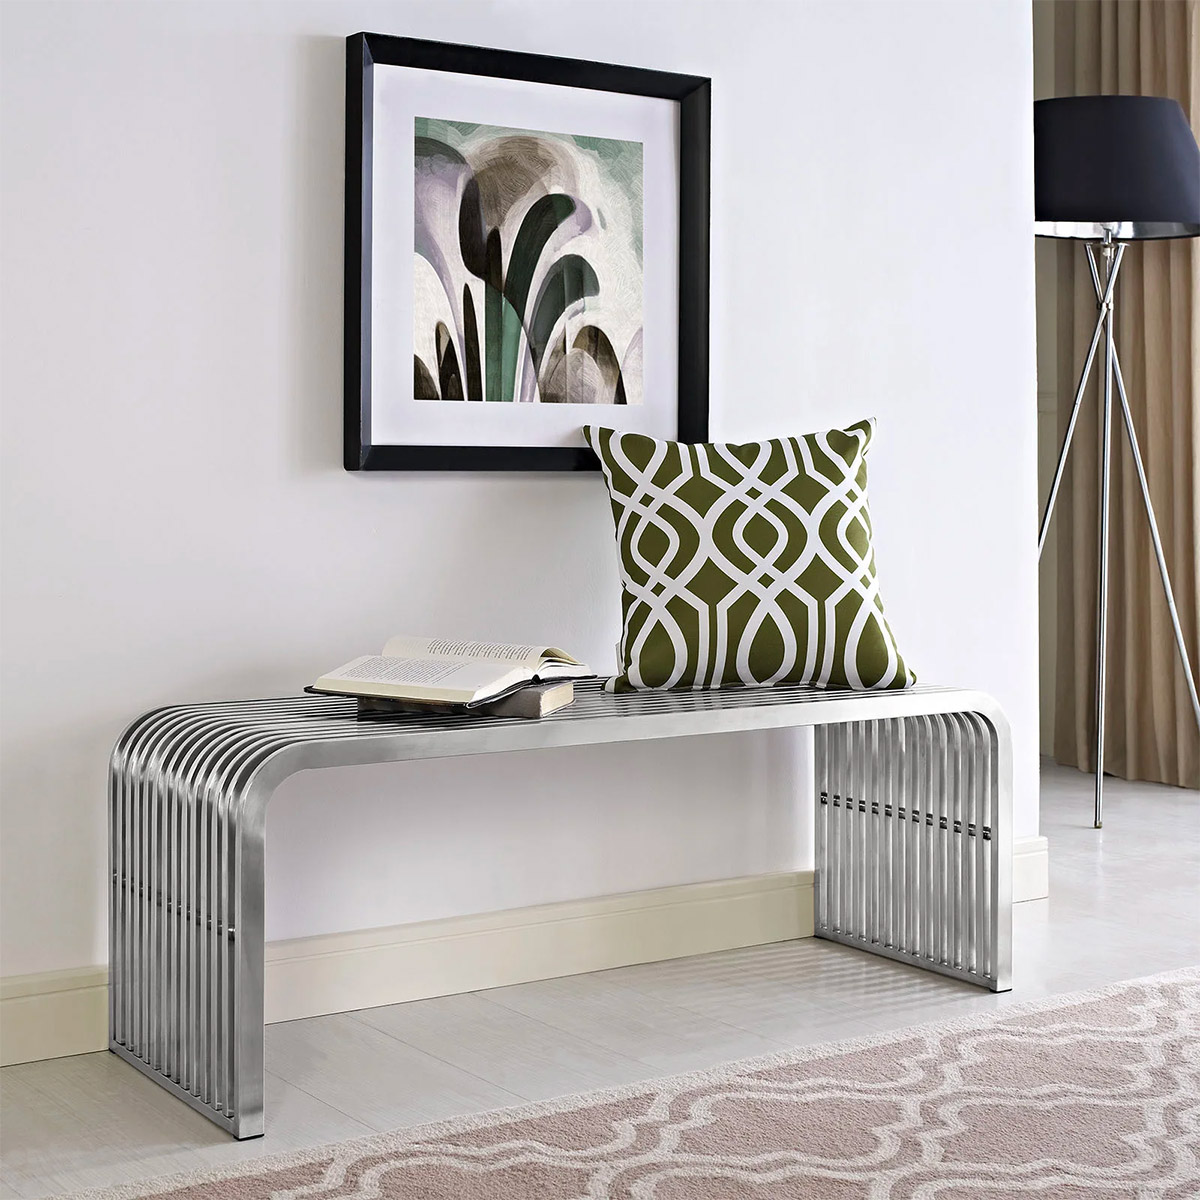 Stainless-Steel-Chrome-Entryway-Bench-Slatted-Metal-Pipe-Design-Modern